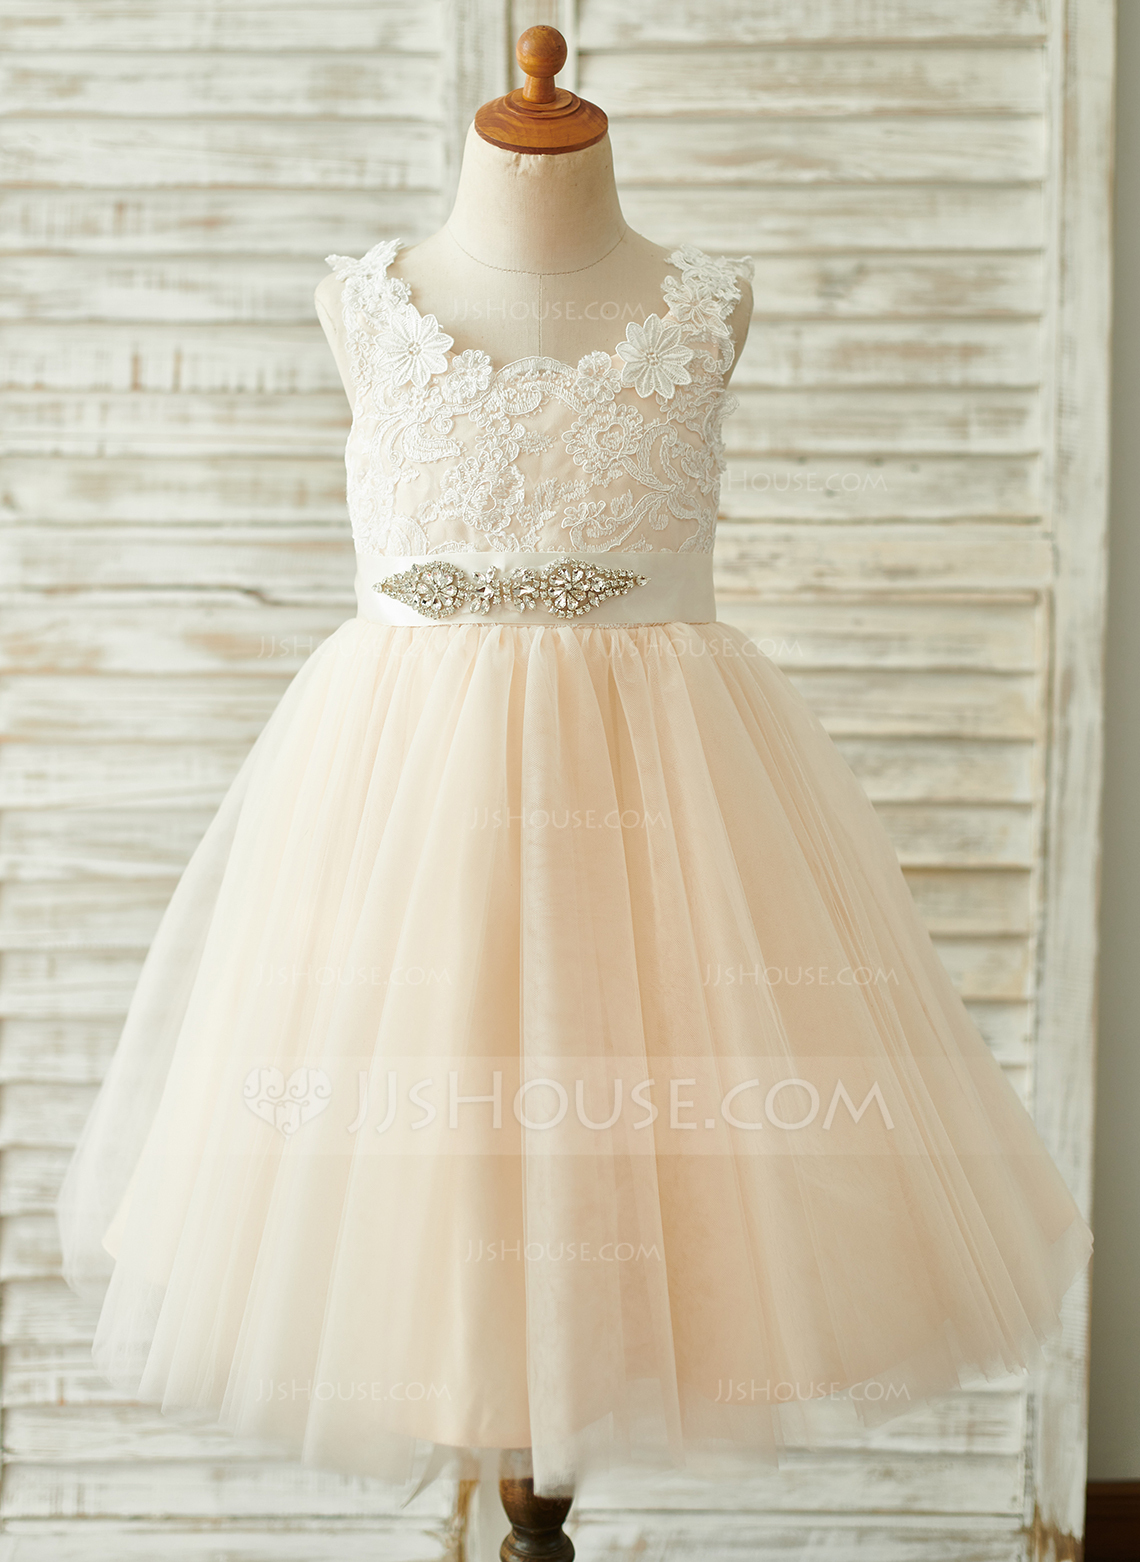 4daab19604bd A-Line Knee-length Flower Girl Dress - Tulle/Lace Sleeveless Scoop Neck. Loading  zoom